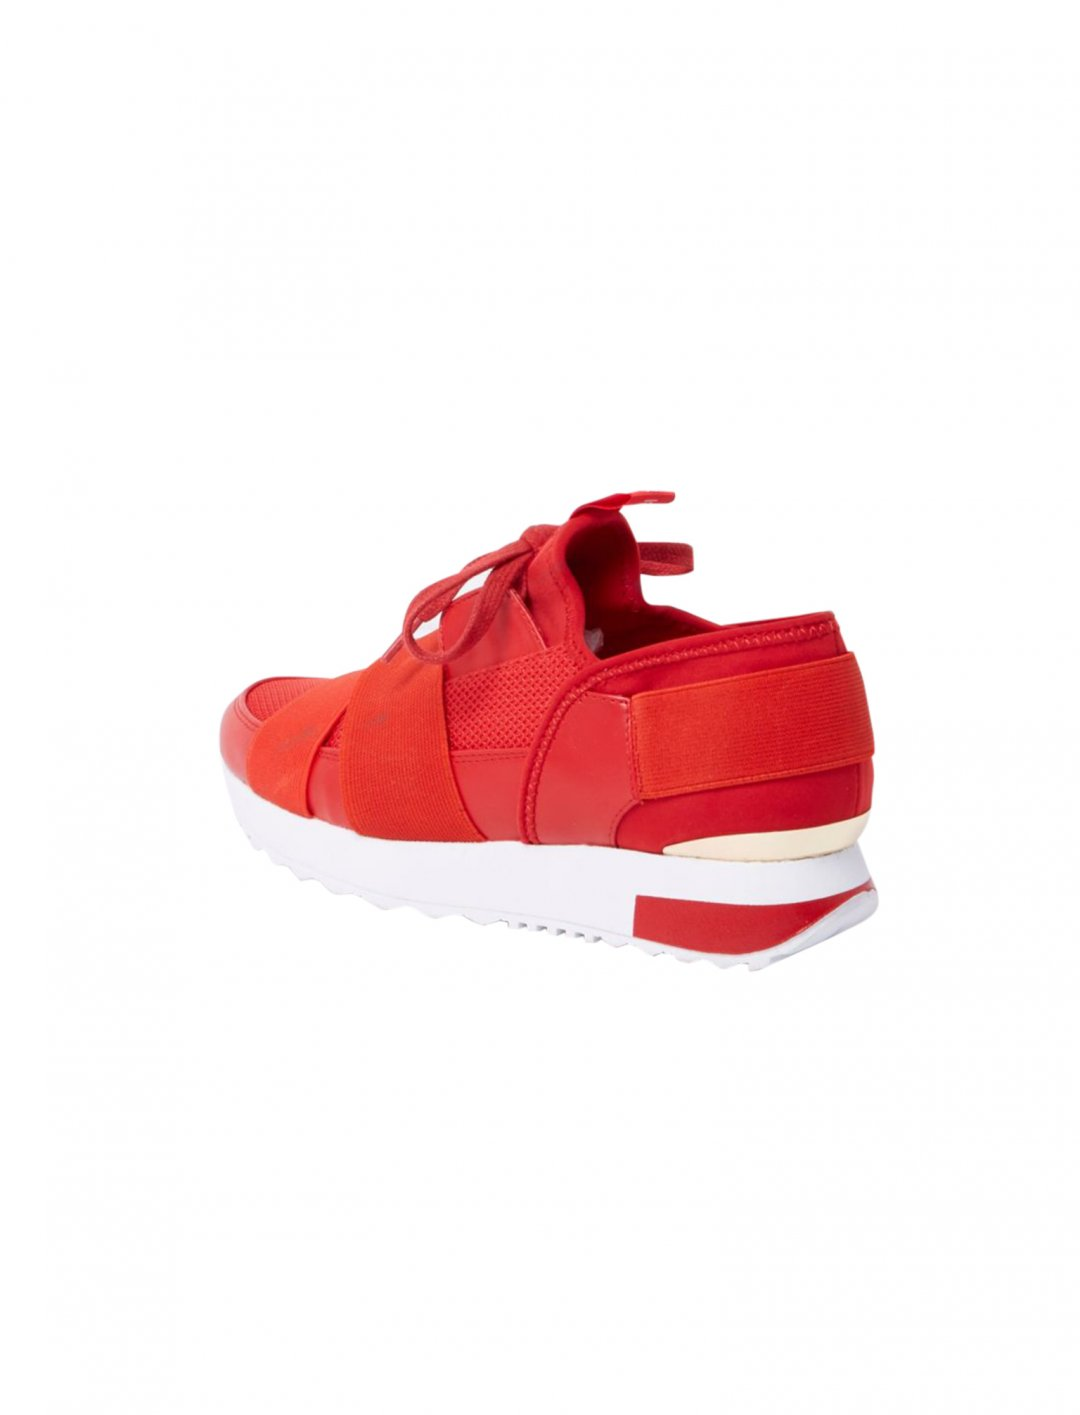 "River Island Runner Trainers {""id"":12,""product_section_id"":1,""name"":""Shoes"",""order"":12} River Island"